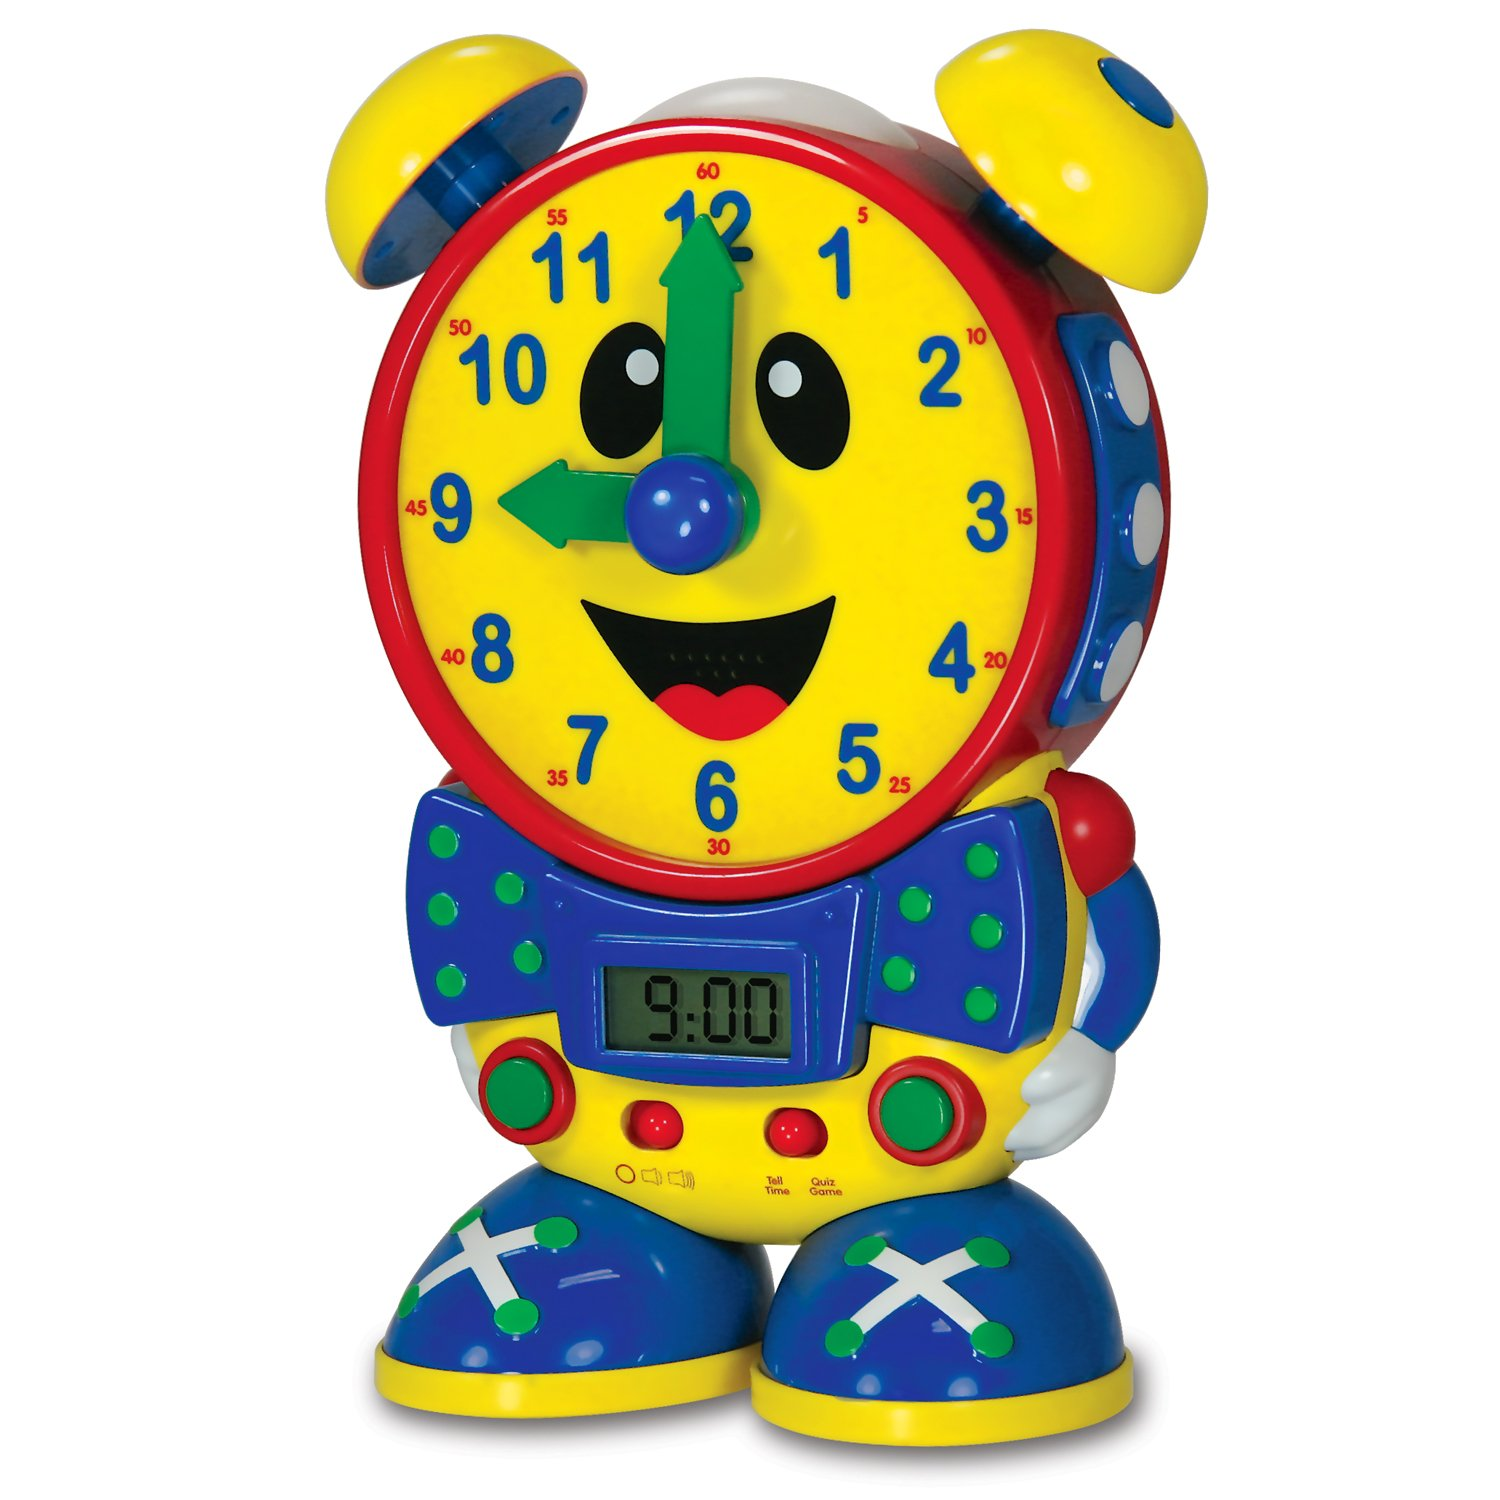 Worksheet Teaching Time Clock amazon com the learning journey telly teaching time clock pink toys games